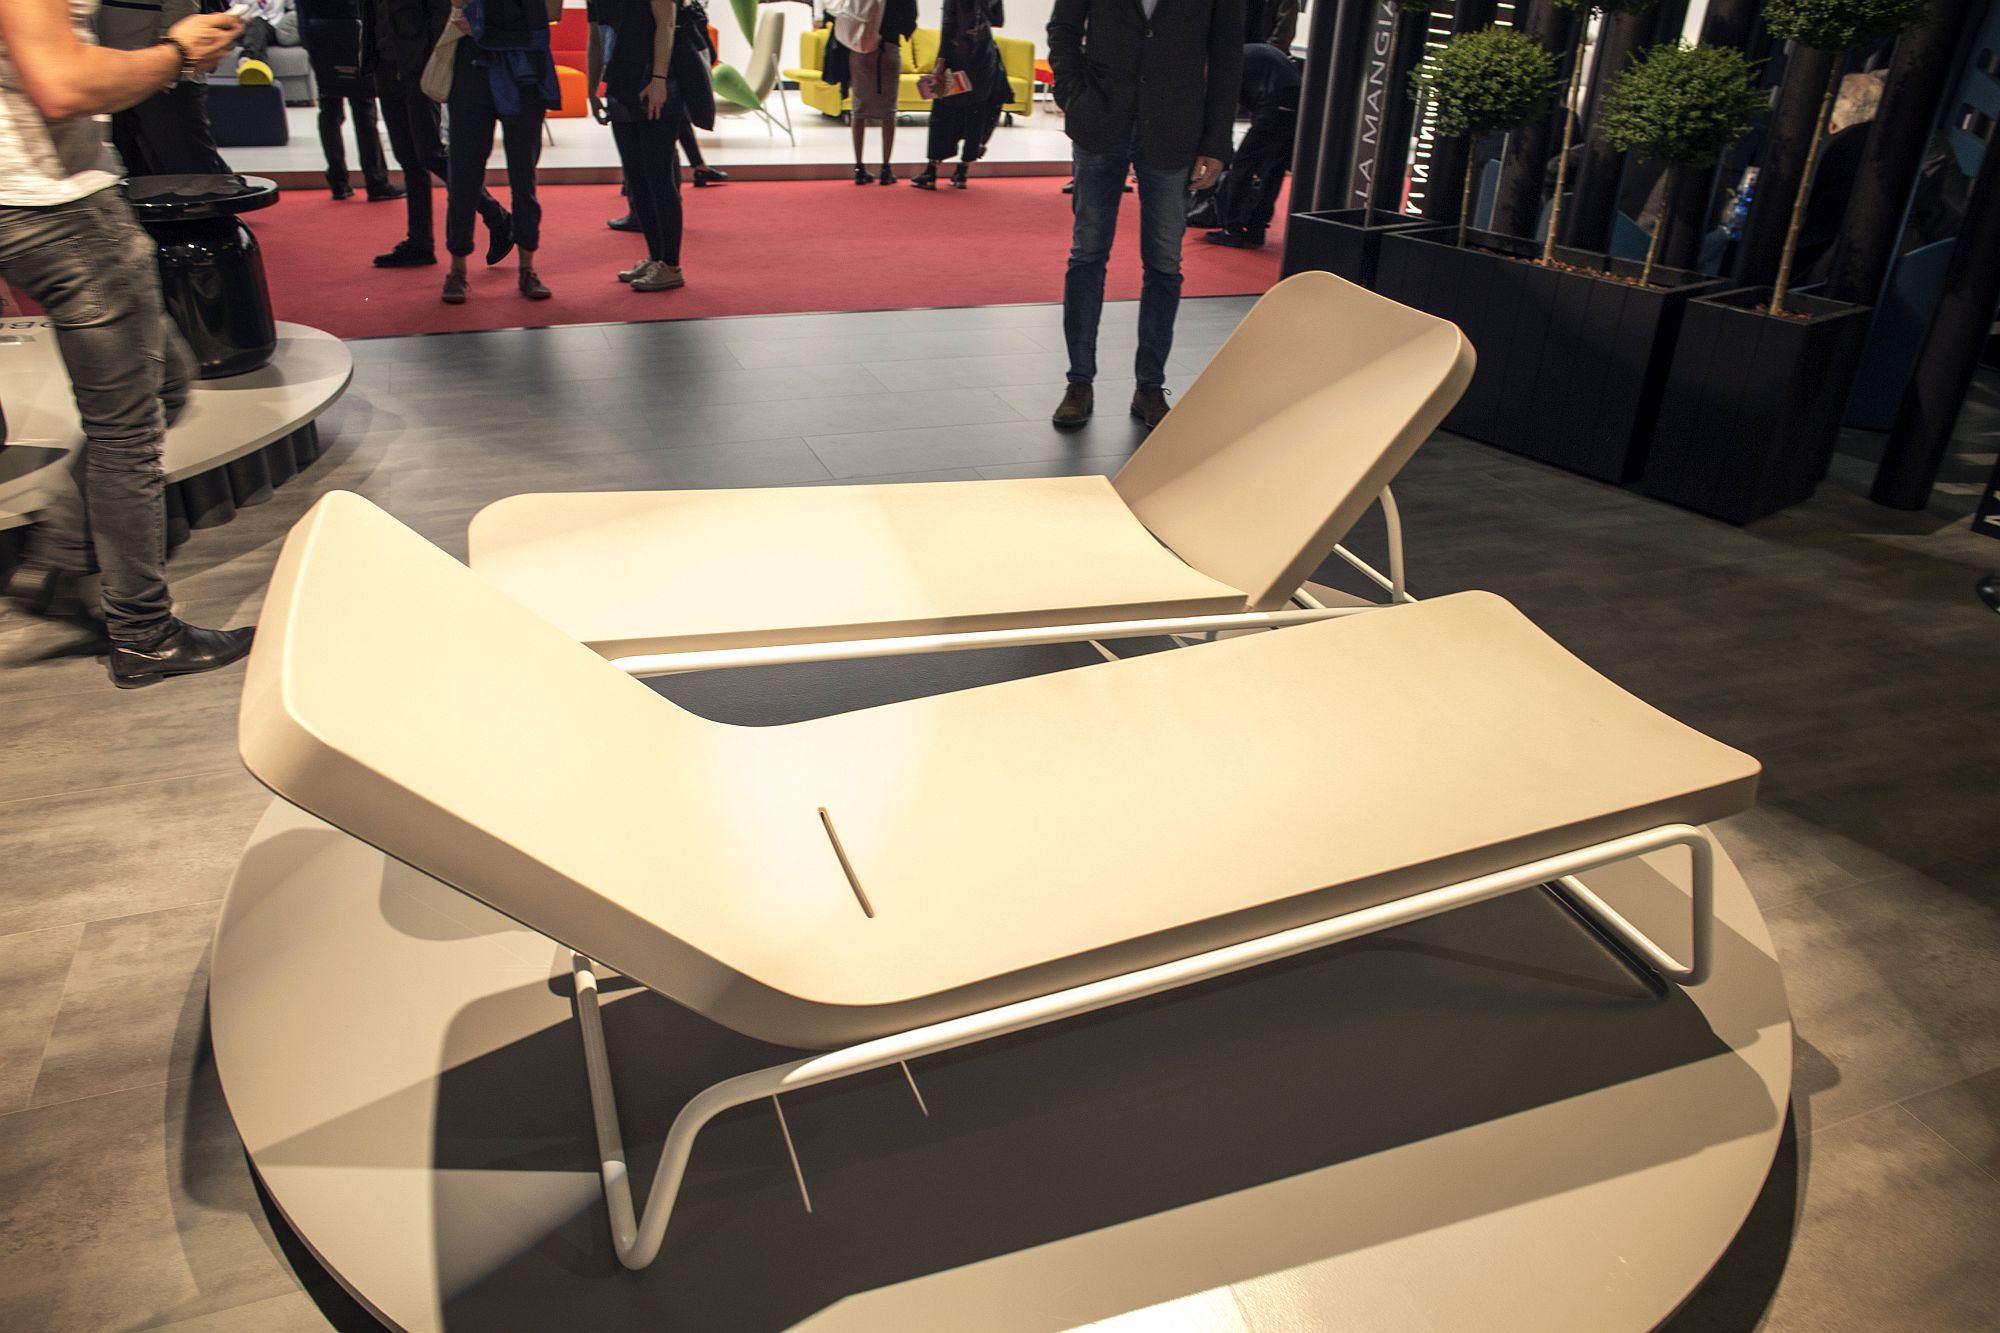 Time Out Reclining Chaise Lounge from Serralunga